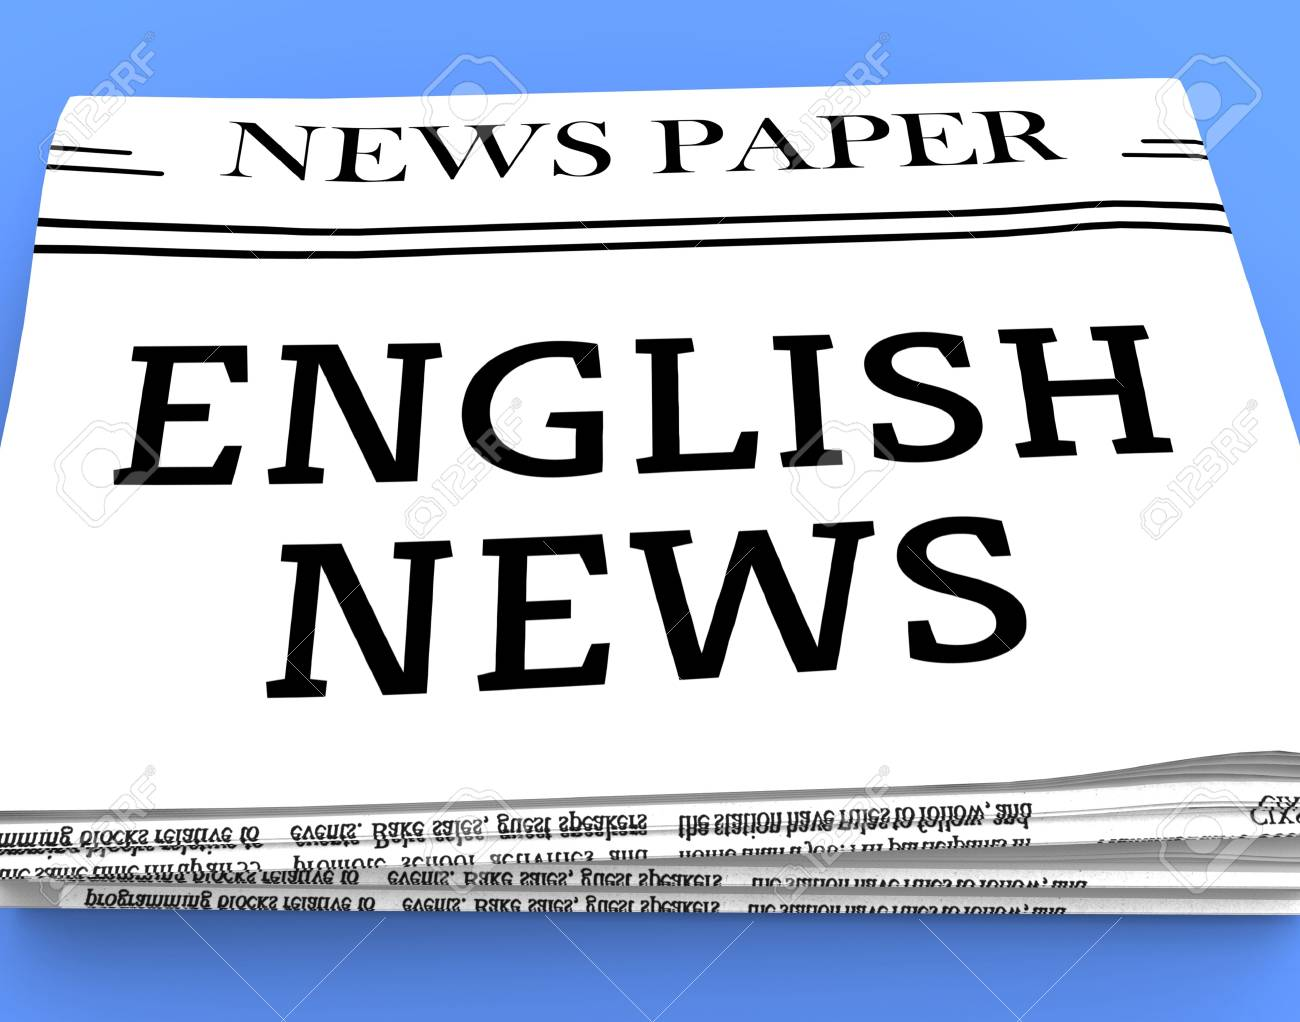 English News Newspaper Shows England Newspapers 3d Rendering Stock Photo, Picture And Royalty Free Image. Image 70551963.